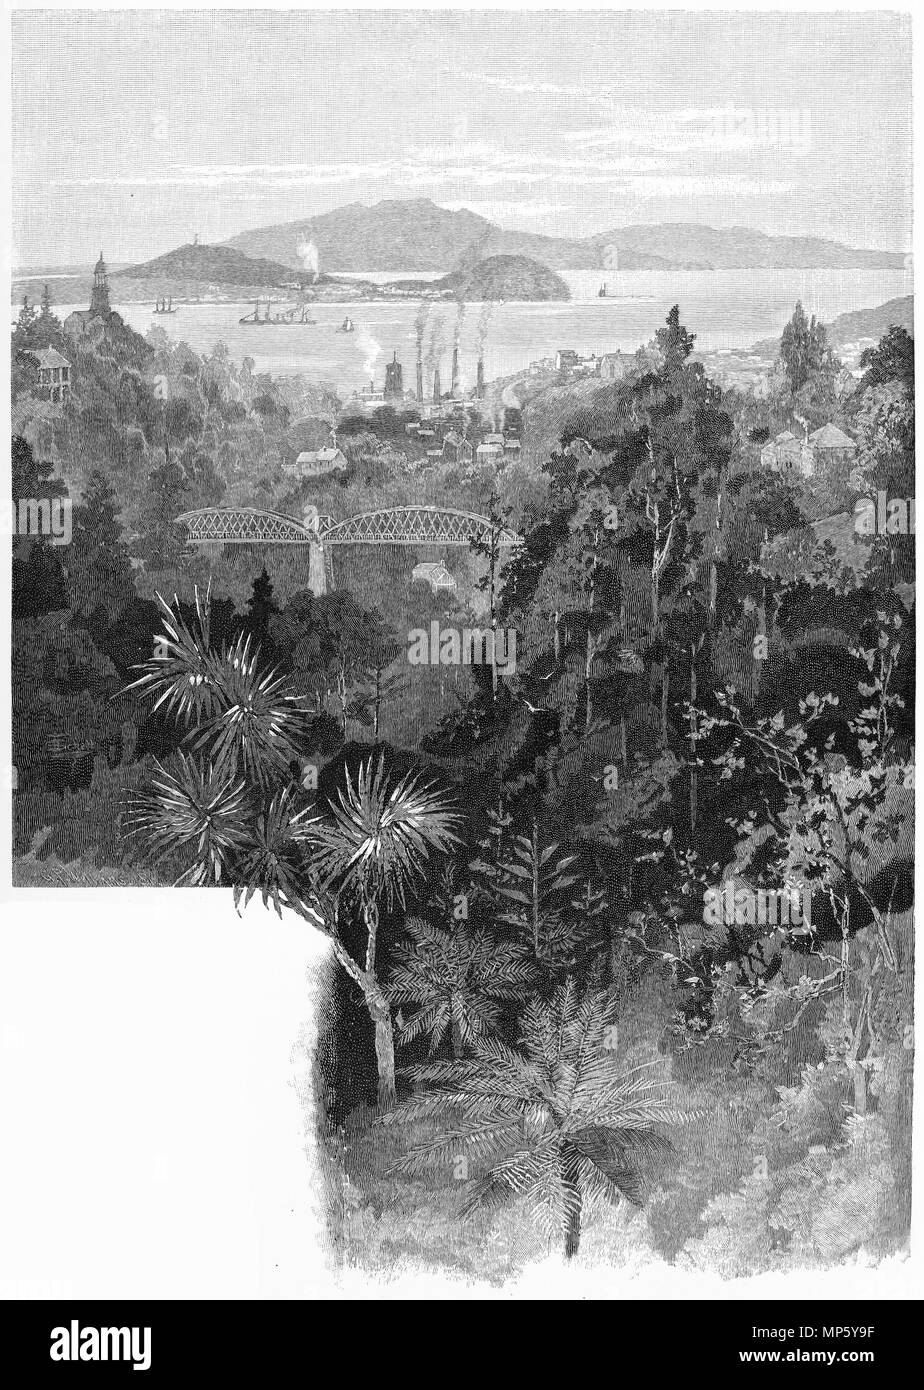 Engraving of Auckland Harbour and Mount Rangitoto viewed from Cemetery Gully, New Zealand. From the Picturesque Atlas of Australasia Vol 3, 1886 - Stock Image